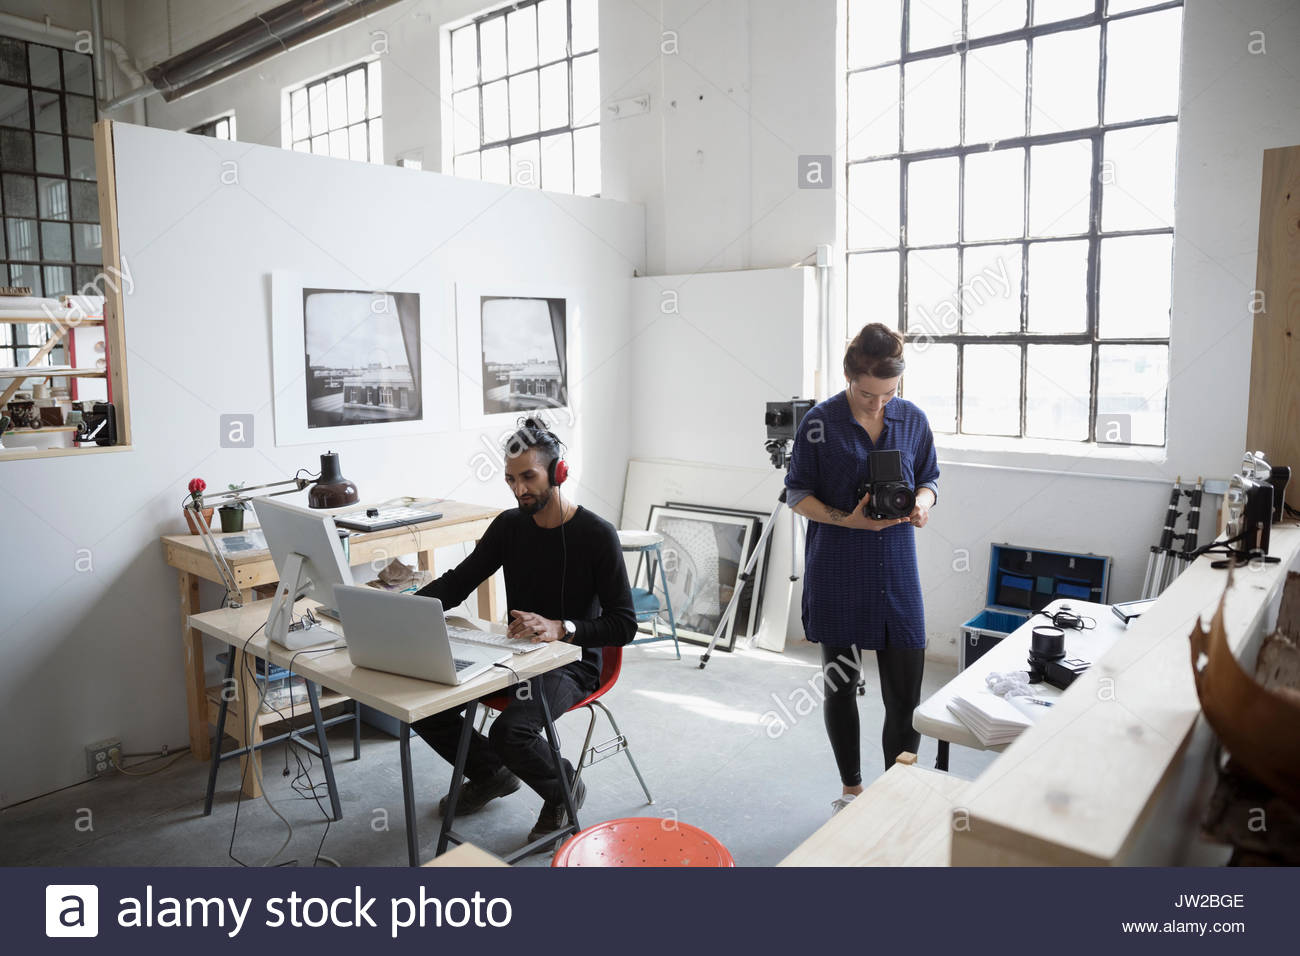 Photographers working at laptop and with digital camera in art studio - Stock Image